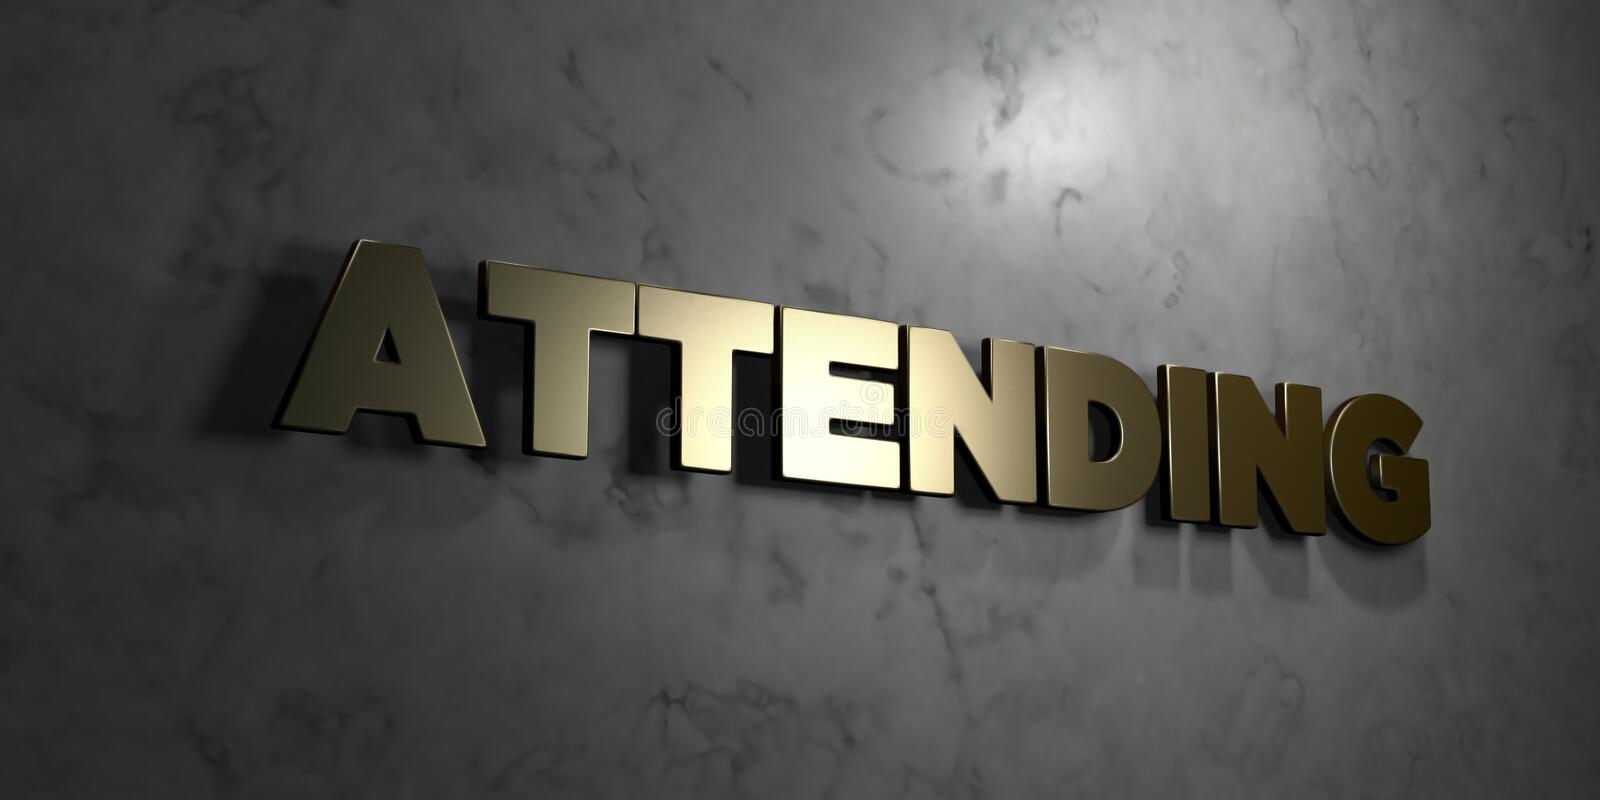 Attending - Gold text on black background - 3D rendered royalty free stock picture. This image can be used for an online website banner ad or a print postcard vector illustration